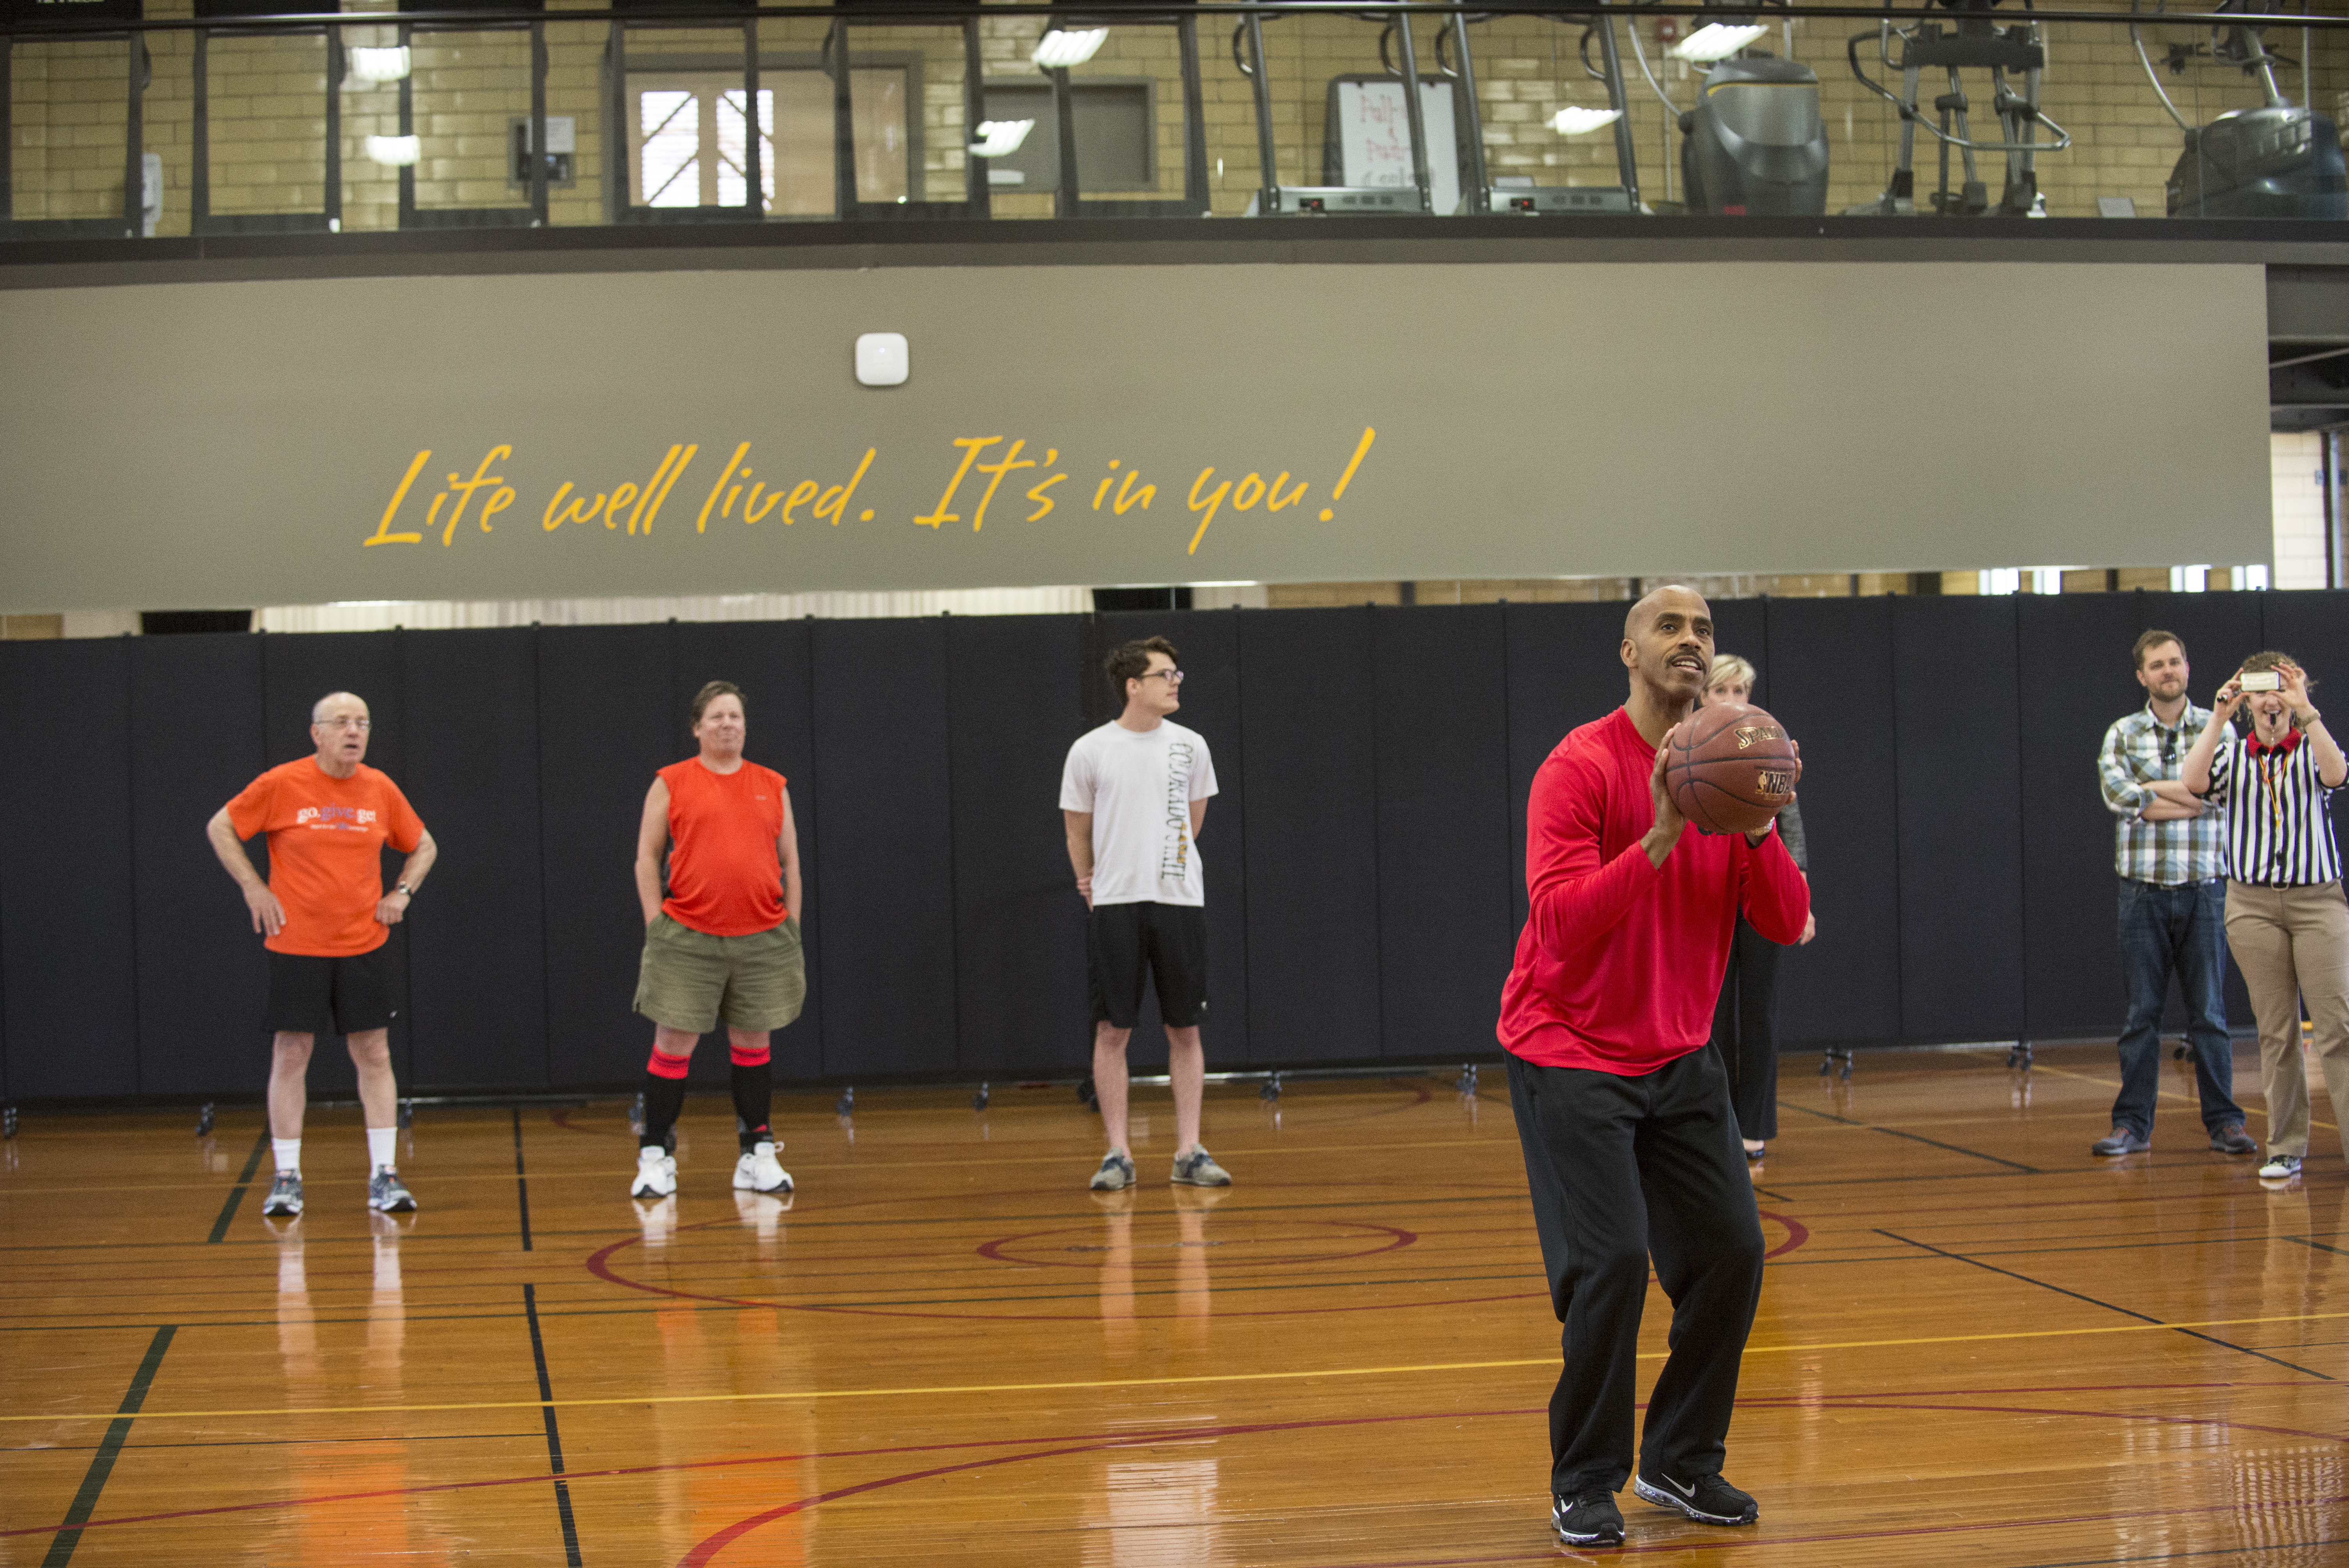 Darrell Griffith shoots basketball Freethrow to Open Courts